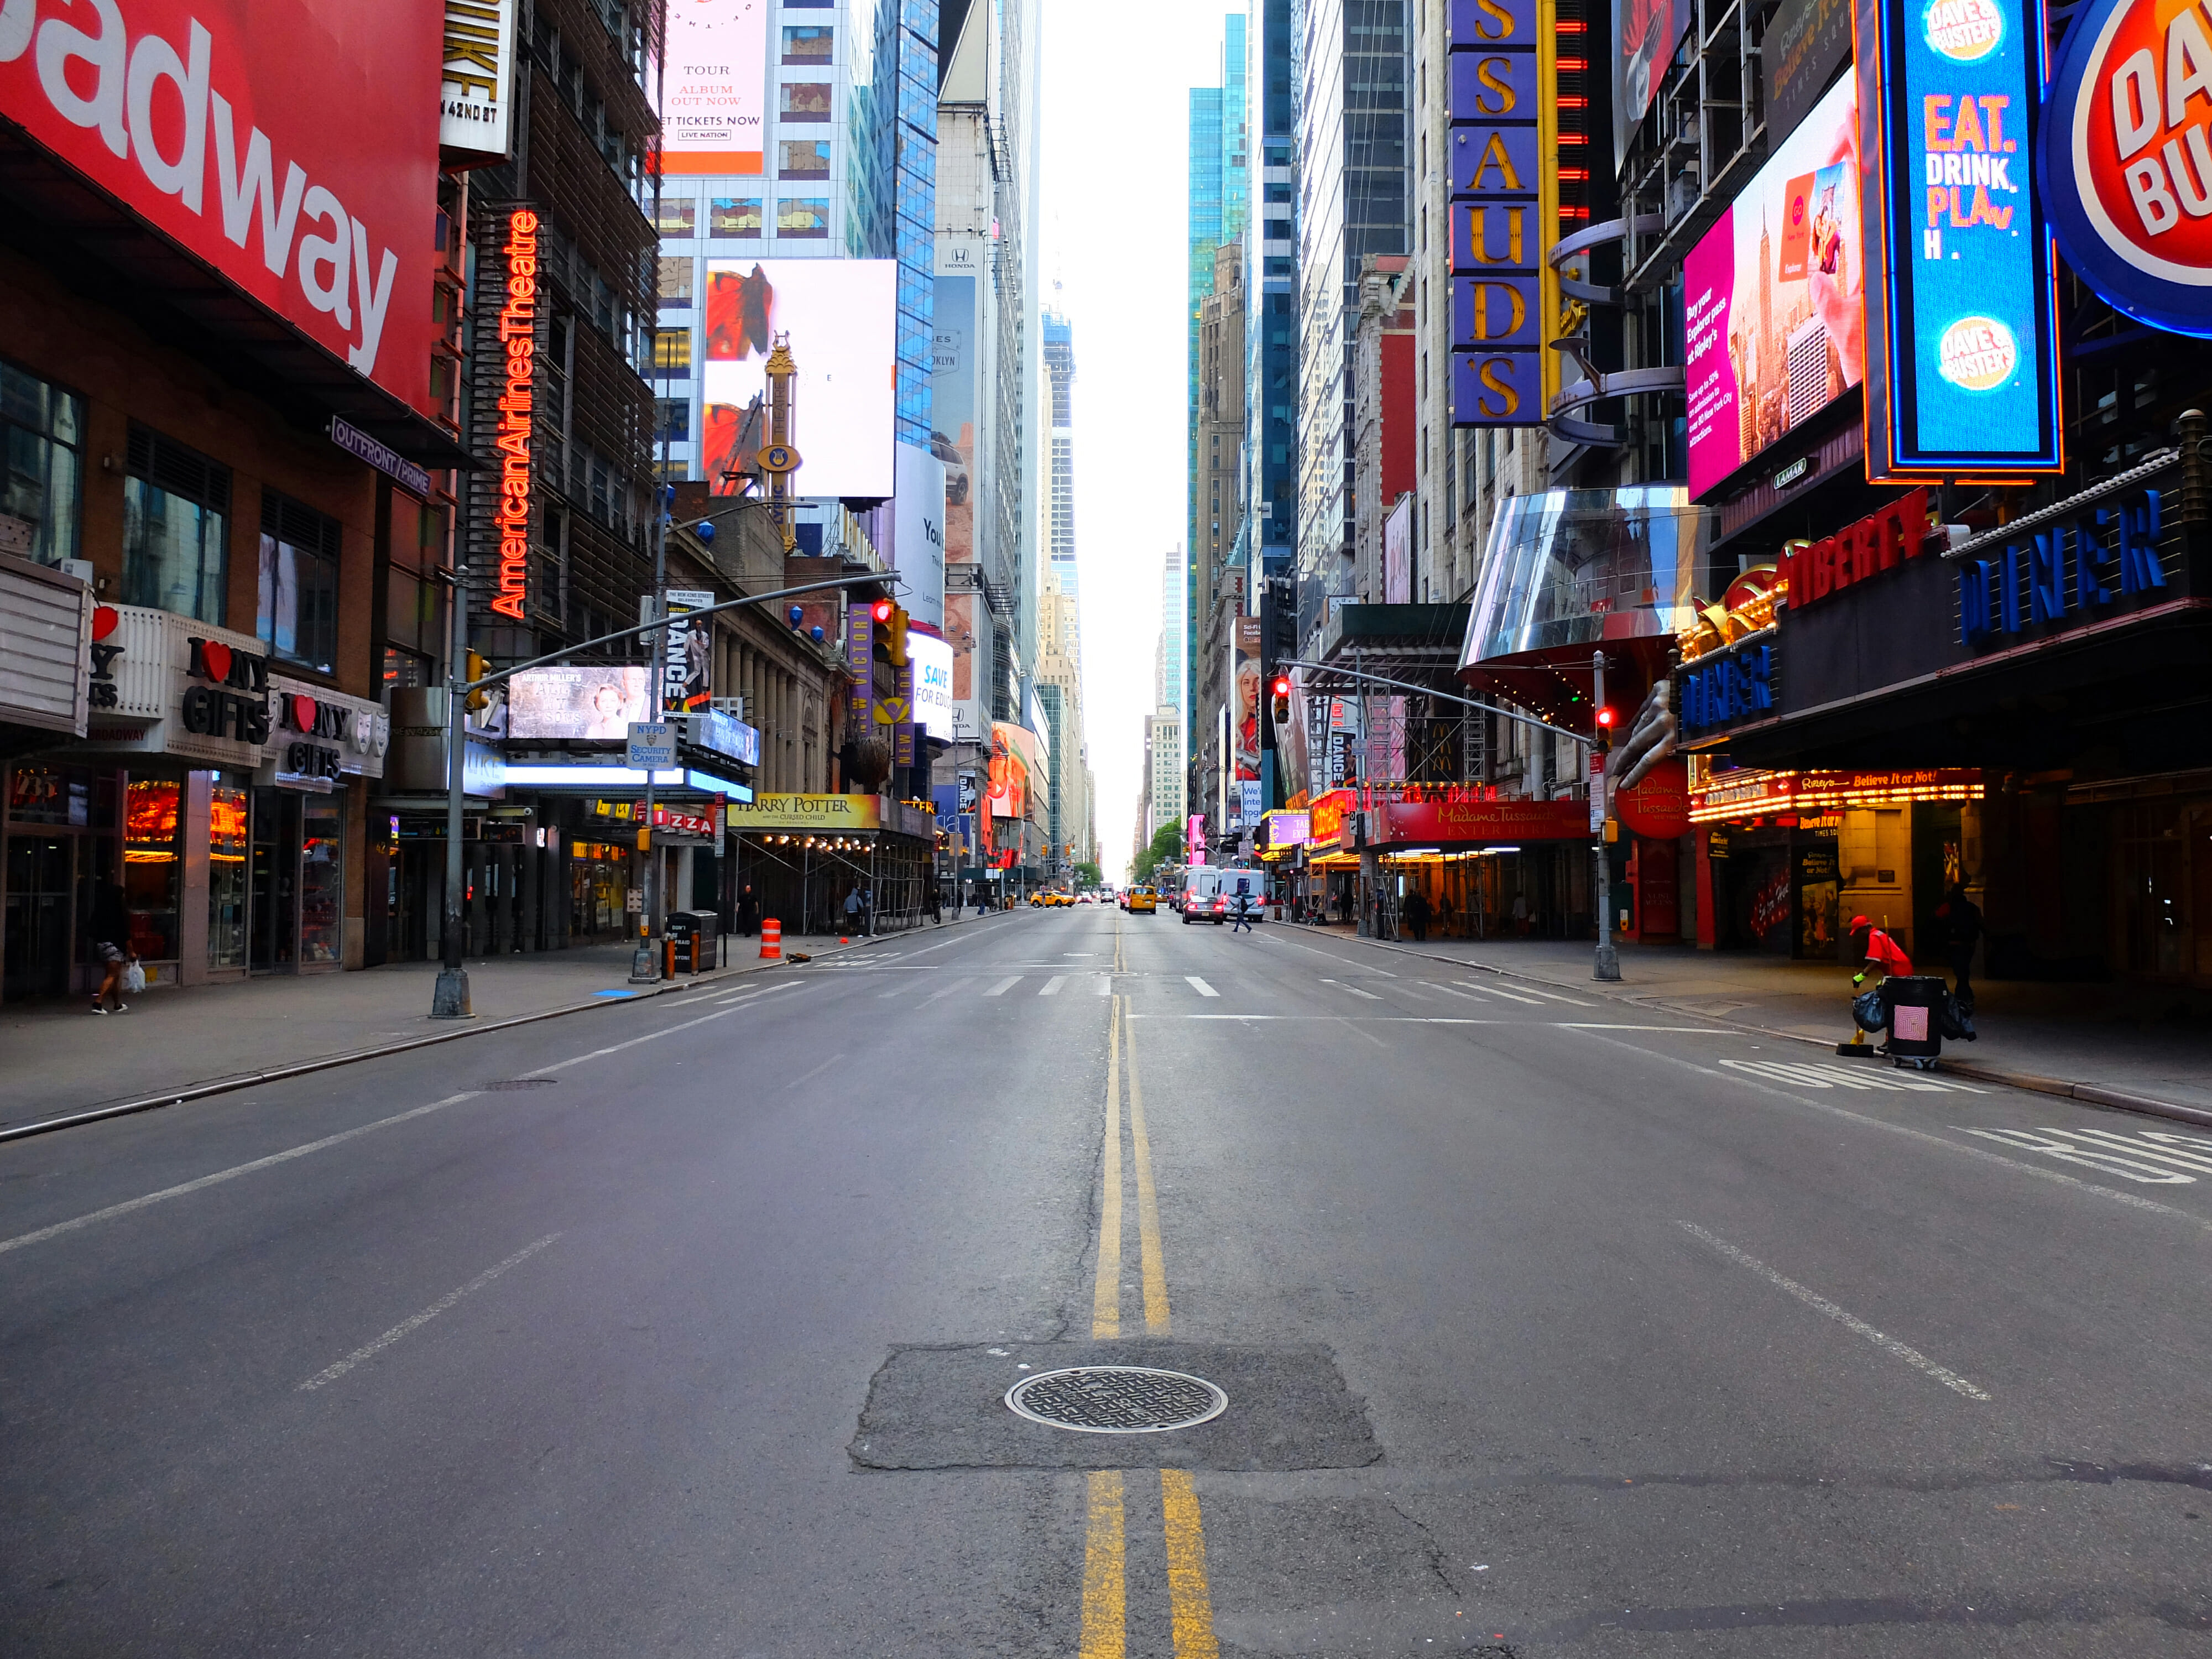 42nd Street in New York High Quality Wallpaper